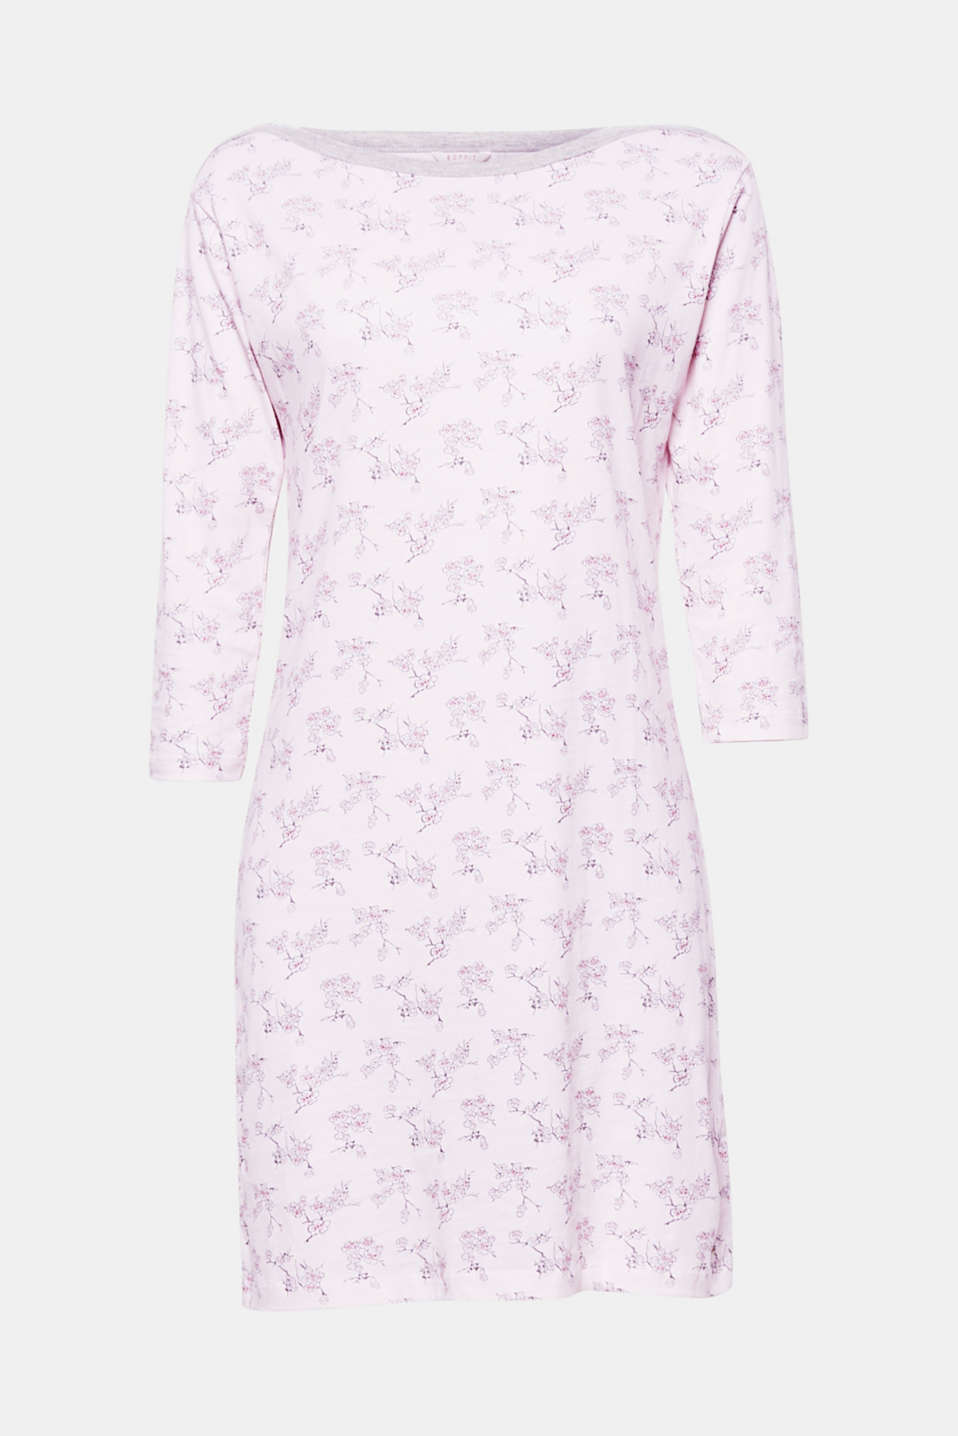 This feminine jersey nightshirt with a cherry blossom print inspired by Japan guarantees sweet dreams!